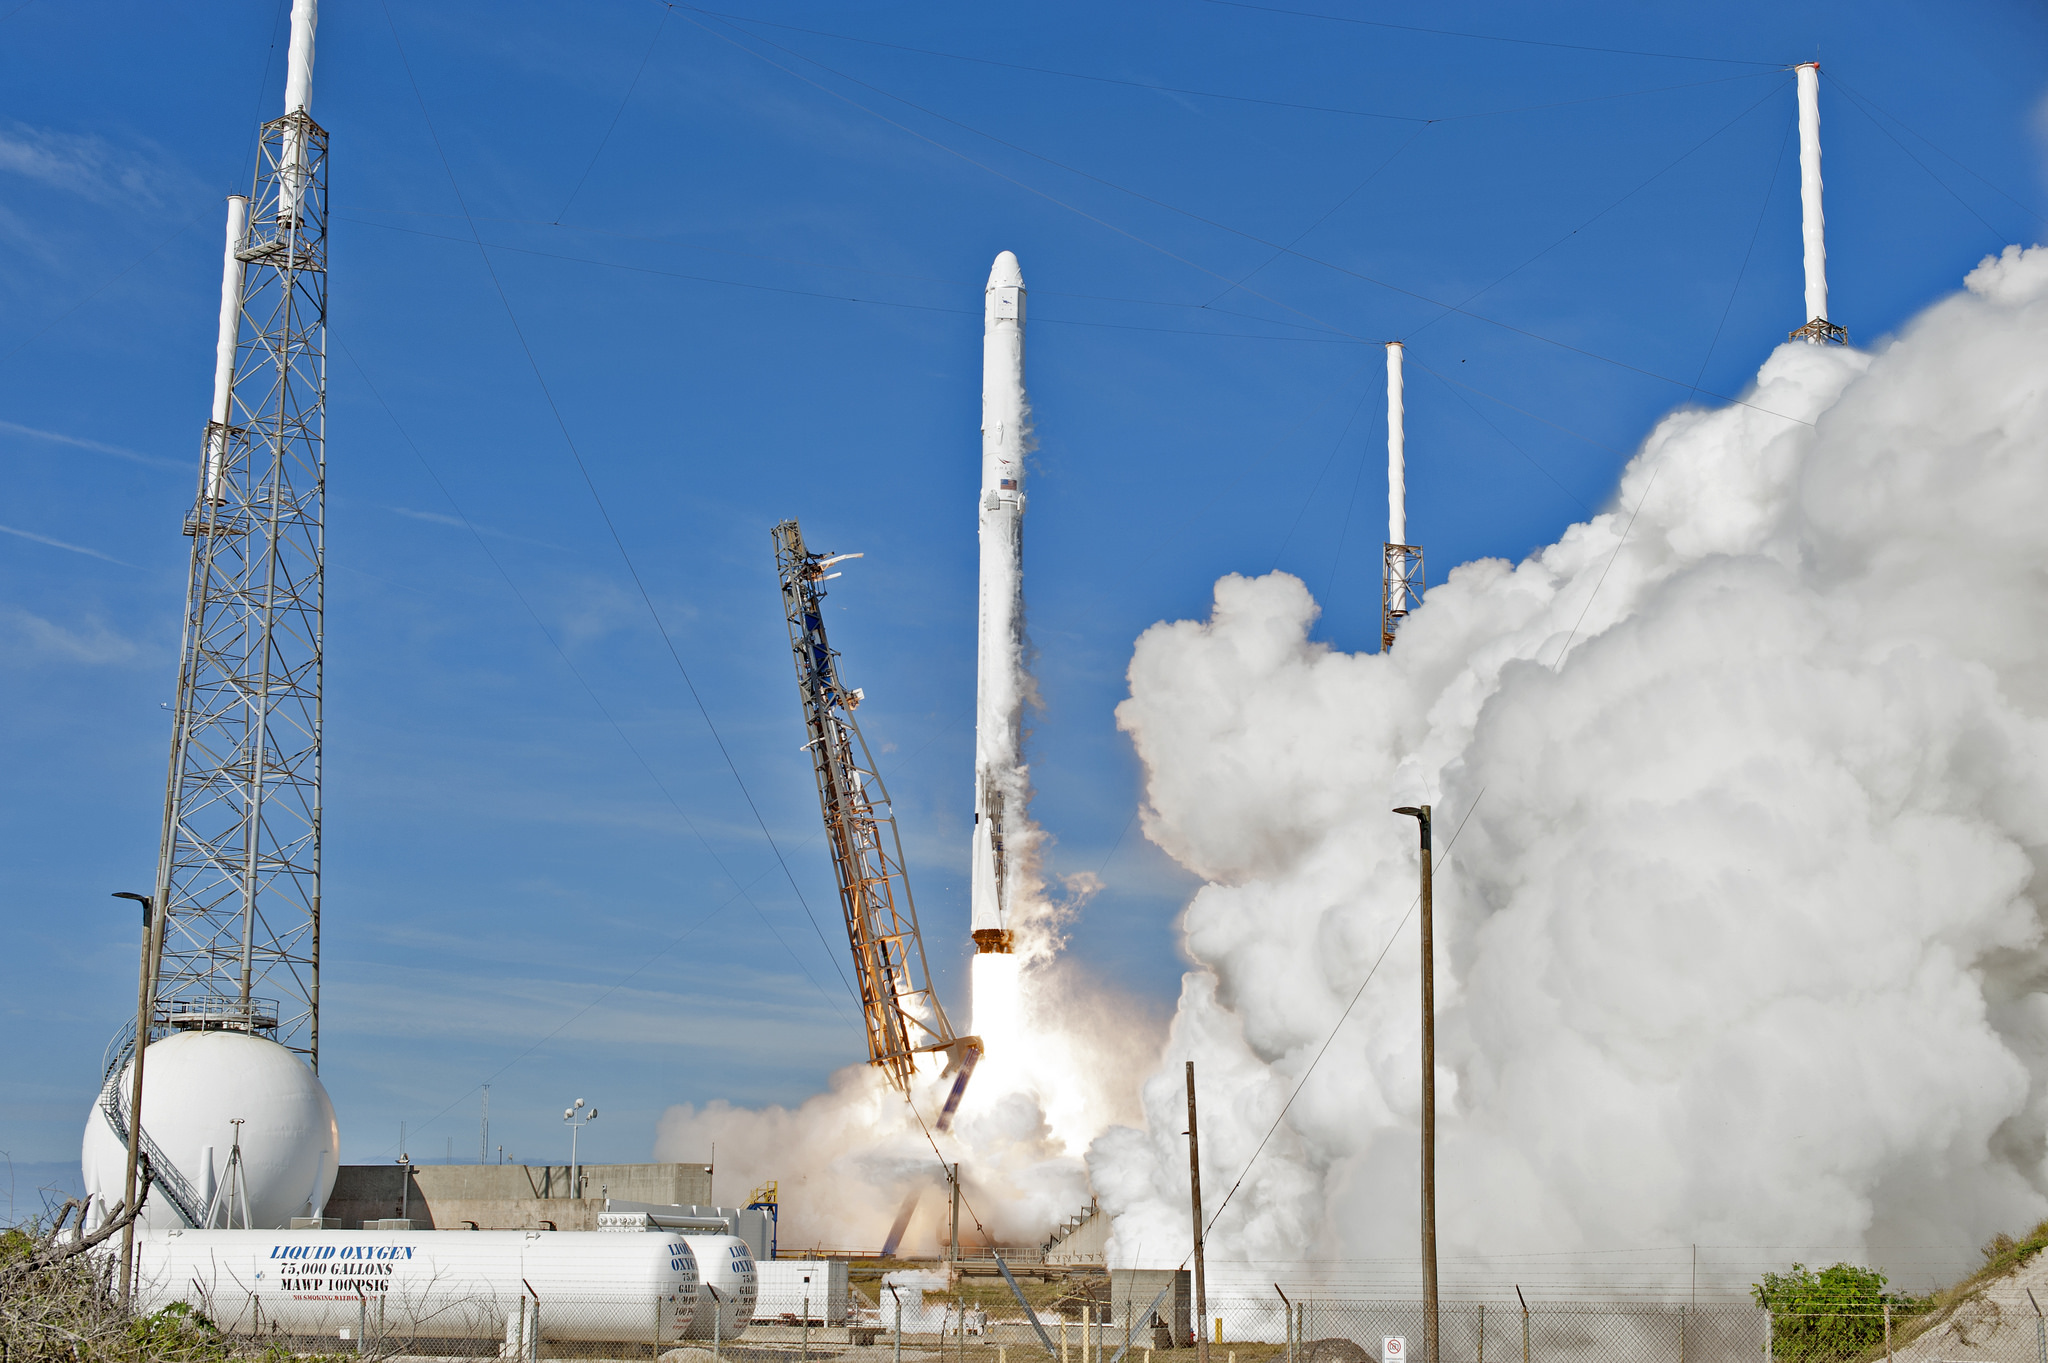 The two-stage Falcon 9 launch vehicle lifts off Space Launch Complex 40 at Cape Canaveral Air Force Station carrying the Dragon resupply spacecraft to the International Space Station.